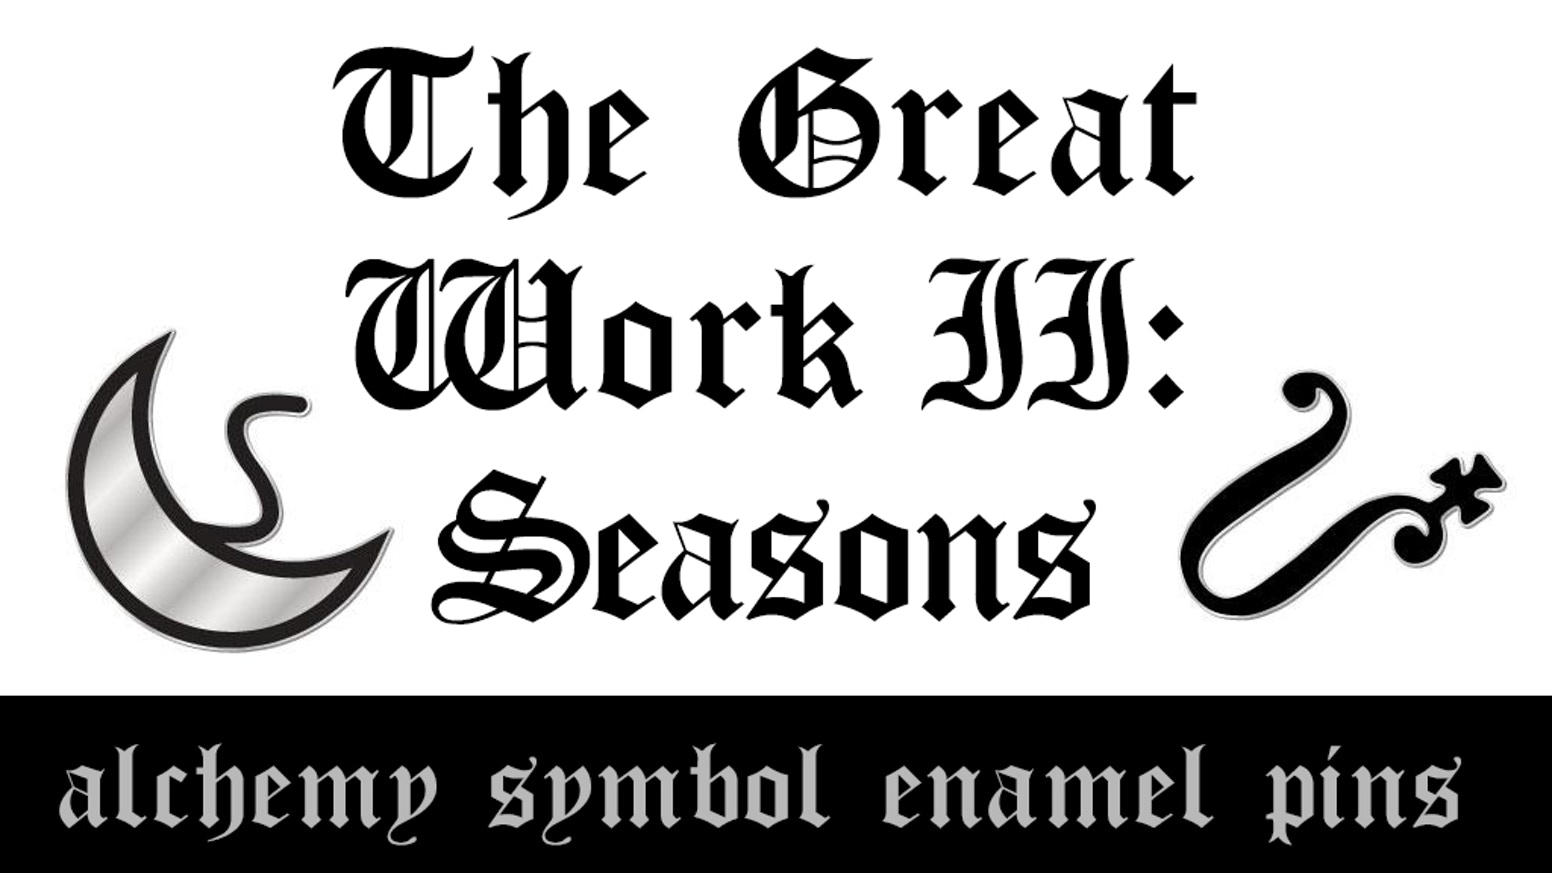 The great work ii seasons alchemy symbol enamel pins by simon the great work ii seasons alchemy symbol enamel pins buycottarizona Image collections